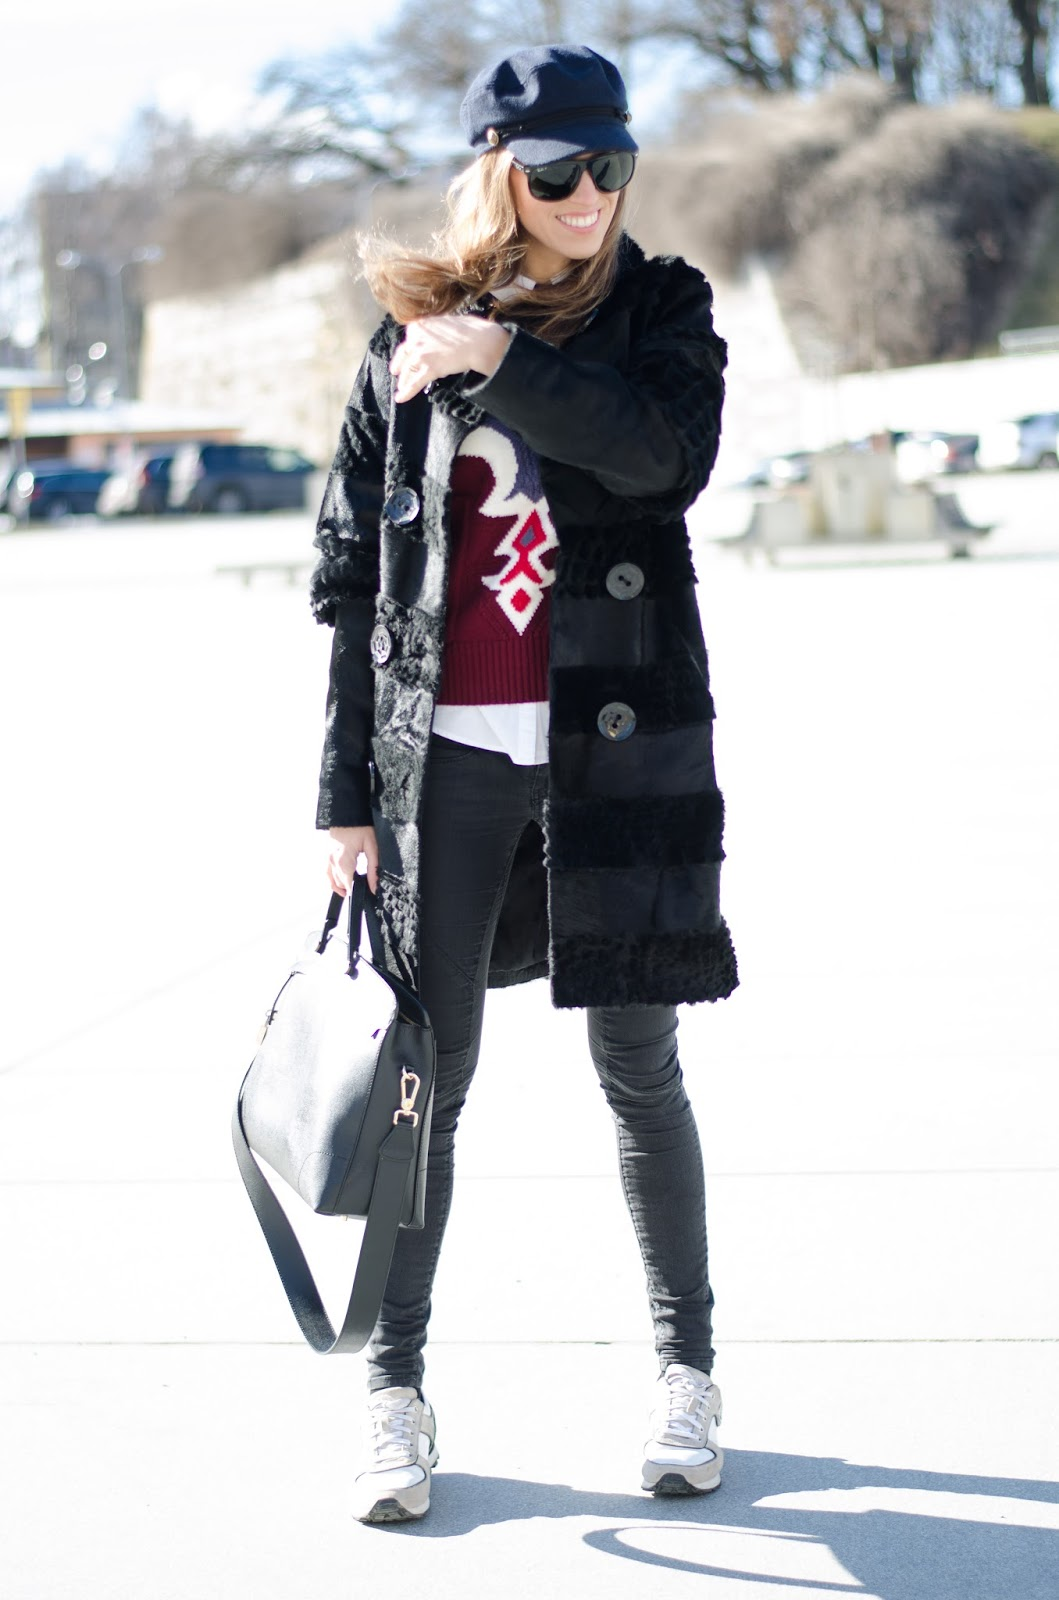 kristjaana mereblack fur coat cap sneakers spring fashion